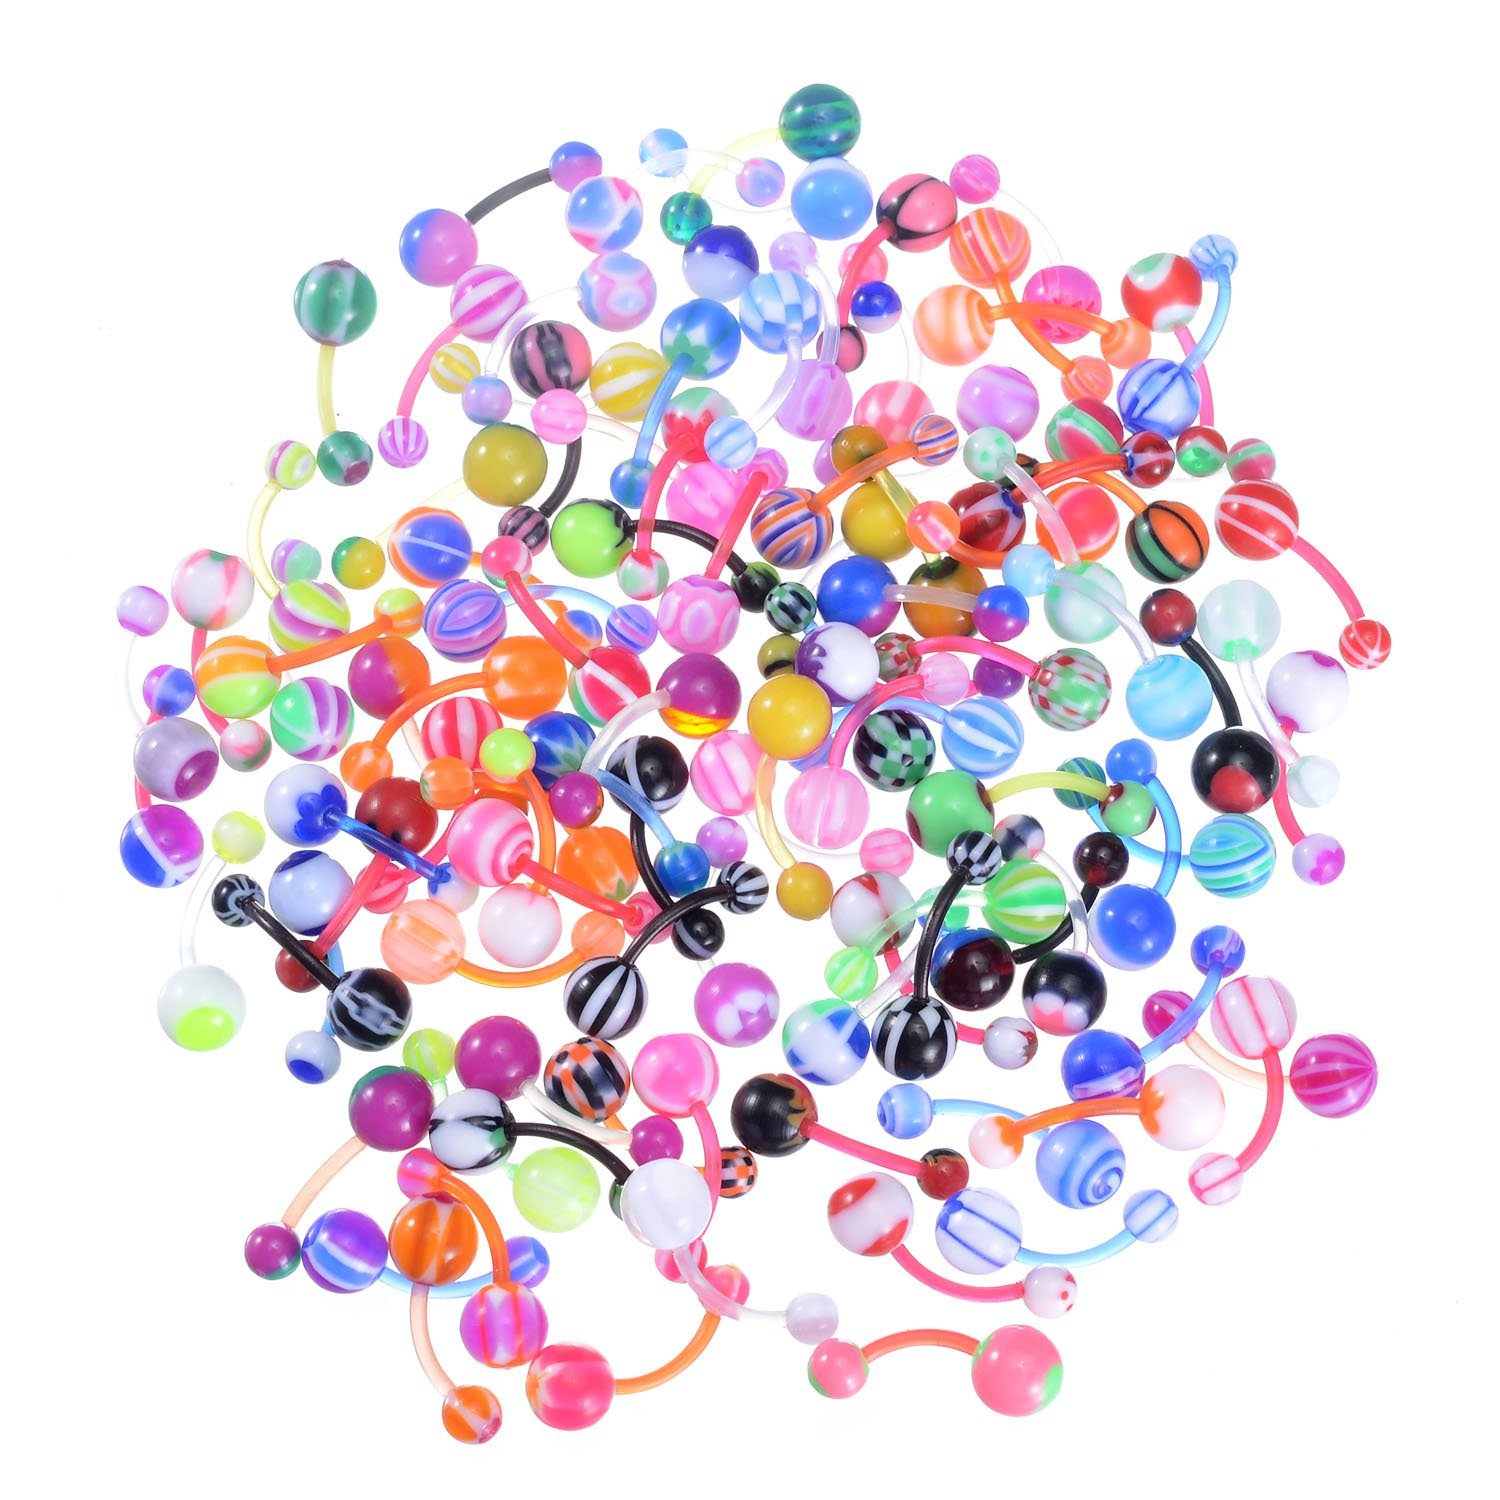 100Pcs 14G Belly Button Rings Assorted Banana Body Piercing Jewelry CABBE KALLO UK_B075YMRRLK